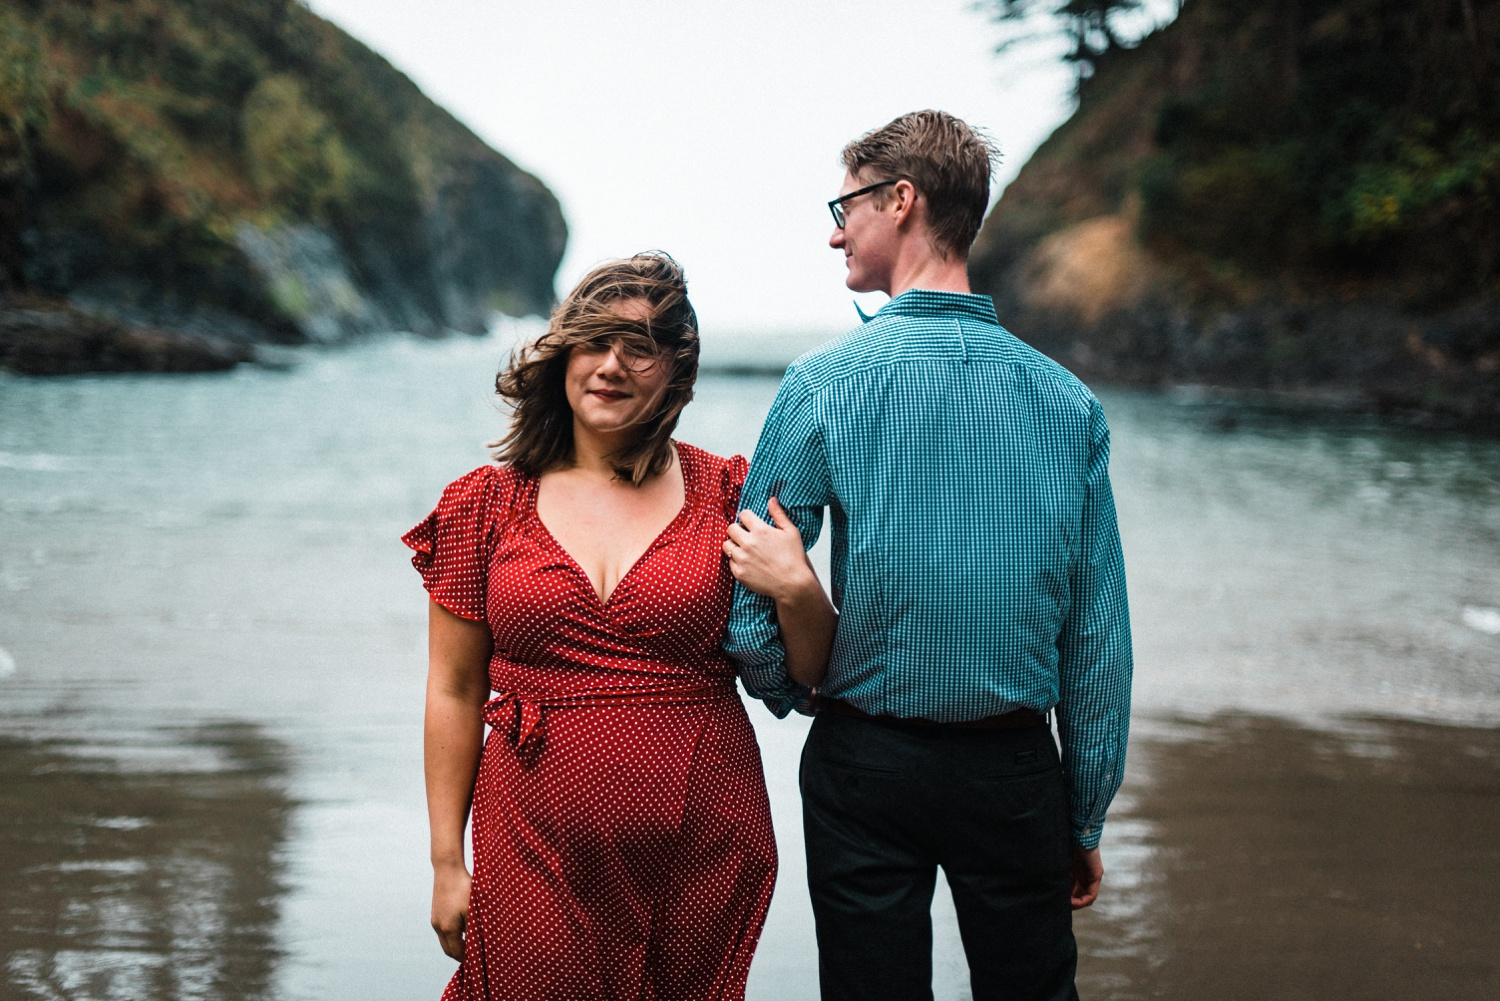 Cape_Disappointment_Engagment_Kailey_Alex_The_Foxes_Photography_061.jpg